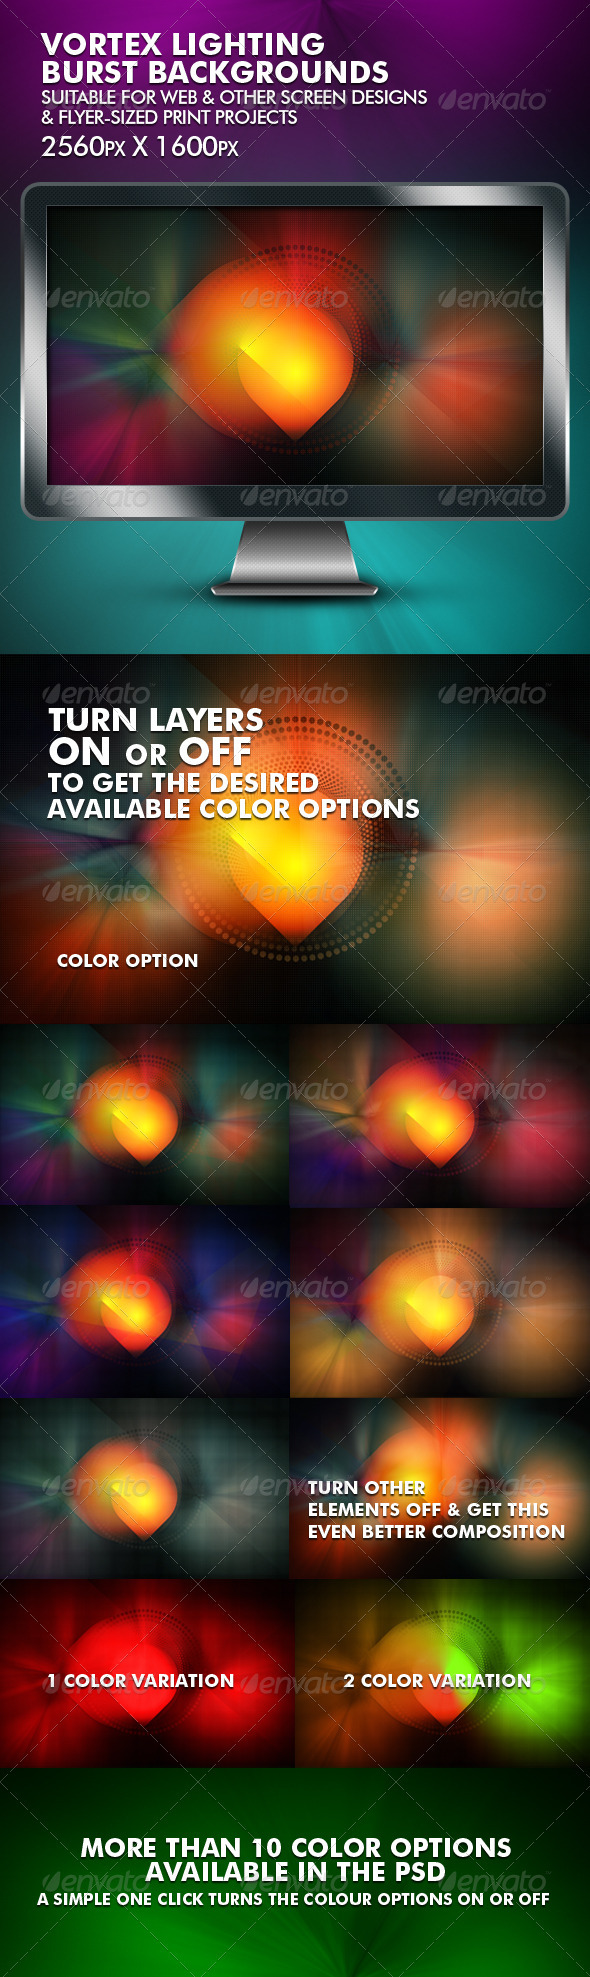 Vortex Lighting Burst Backgrounds - Backgrounds Graphics